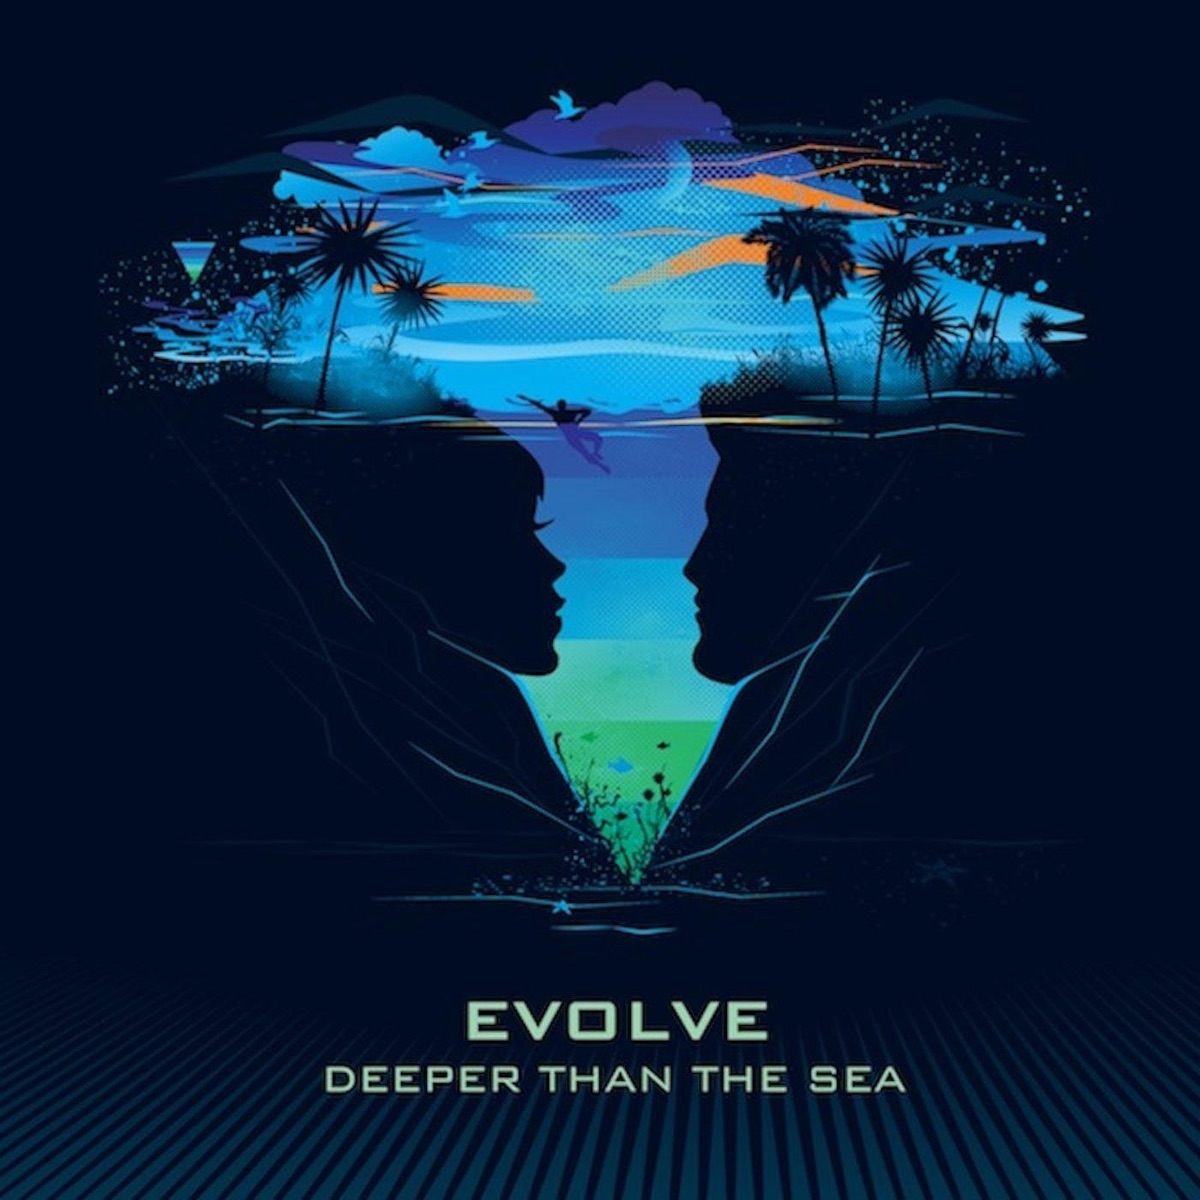 Deeper Than the Sea Evolve CD cover